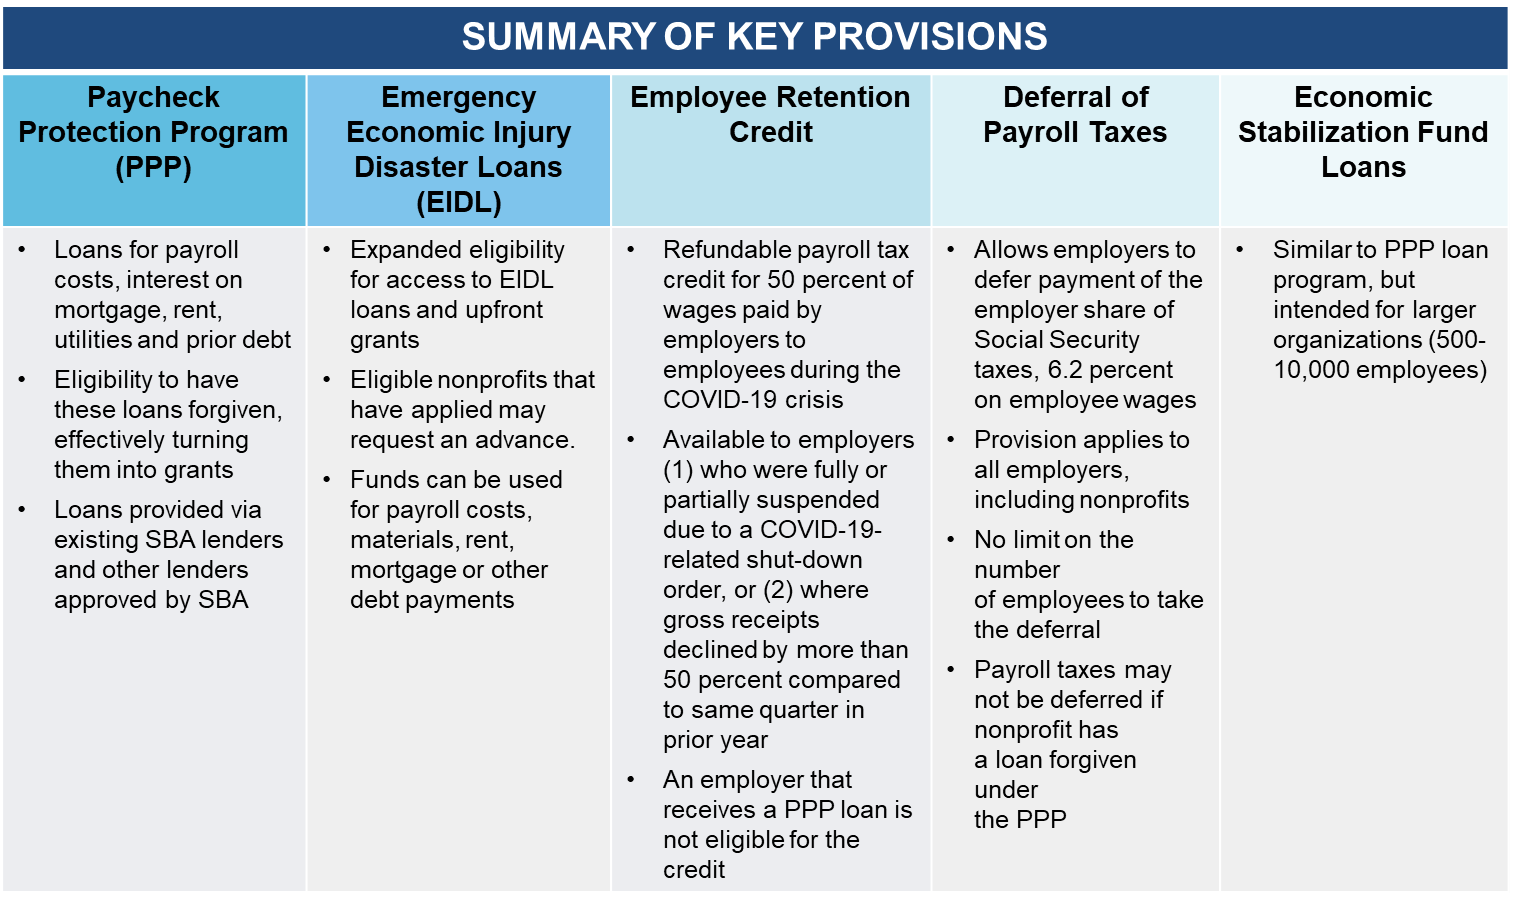 Summary of Key Provisions CARES Act